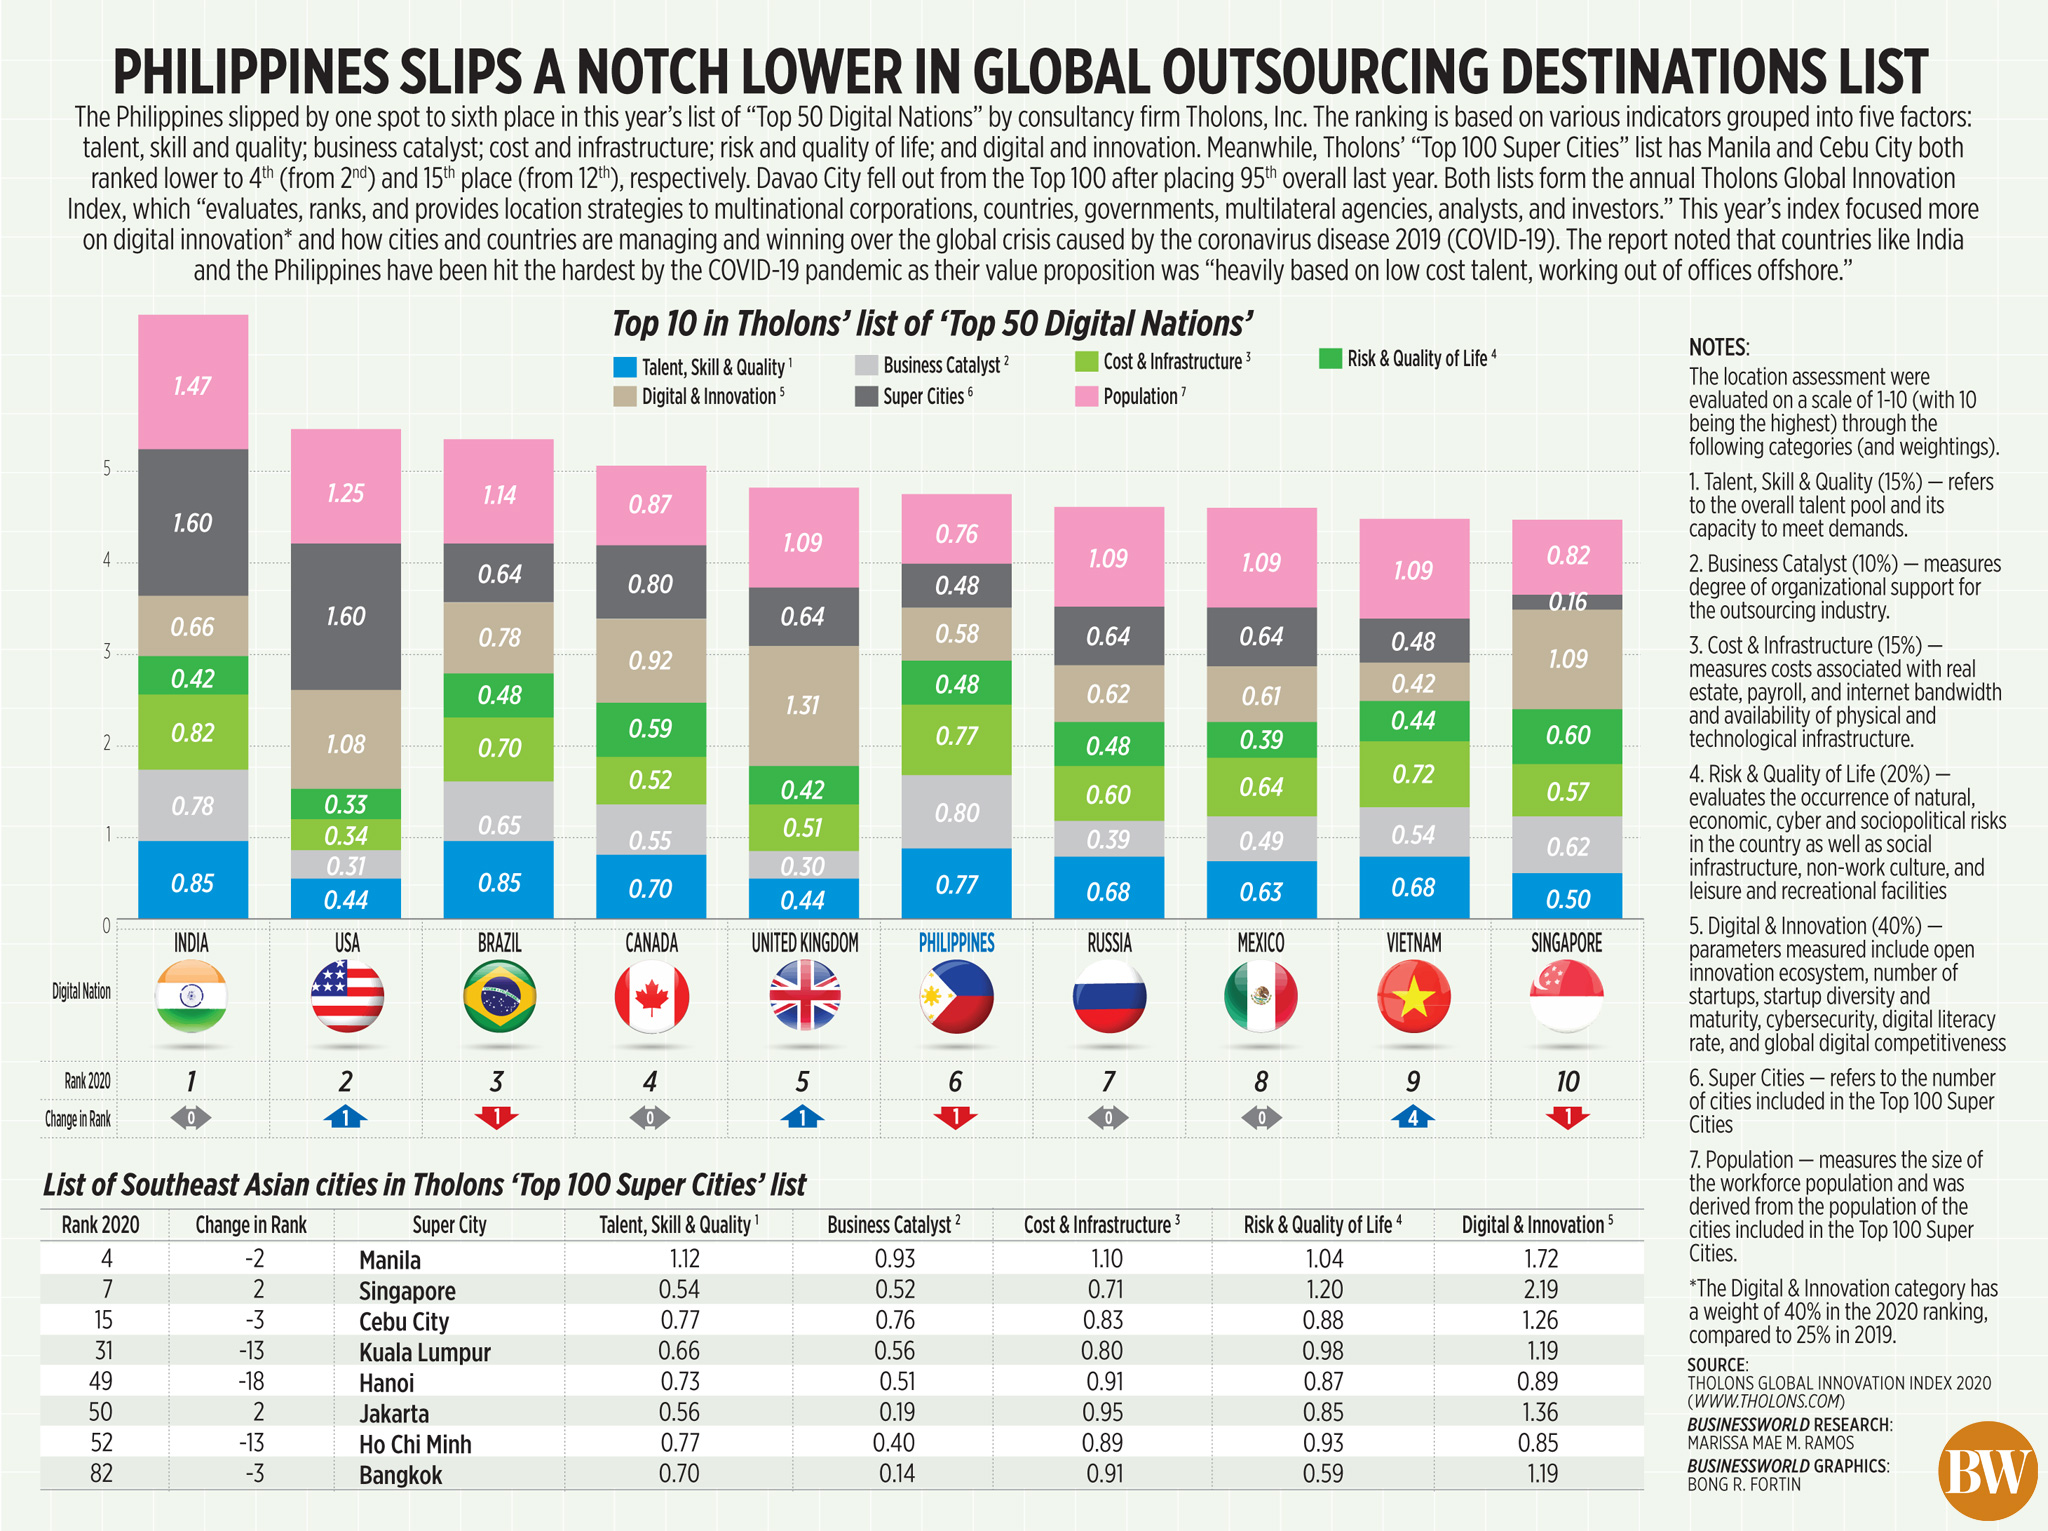 50289880066 de39518675 o - Philippines slips a notch lower in global outsourcing destinations list